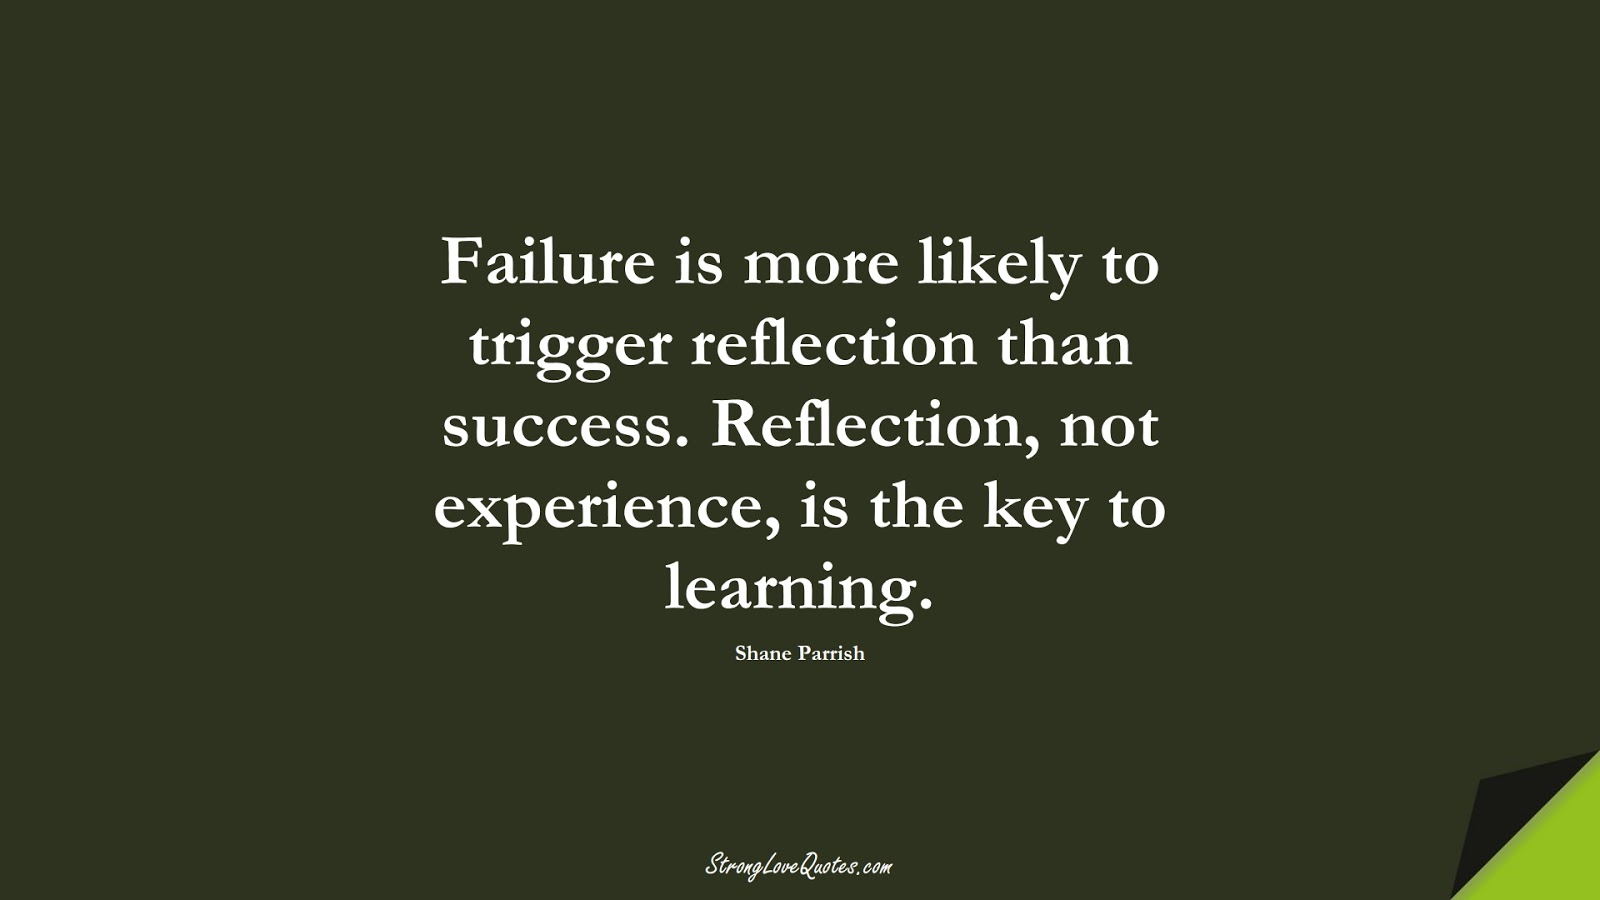 Failure is more likely to trigger reflection than success. Reflection, not experience, is the key to learning. (Shane Parrish);  #LearningQuotes